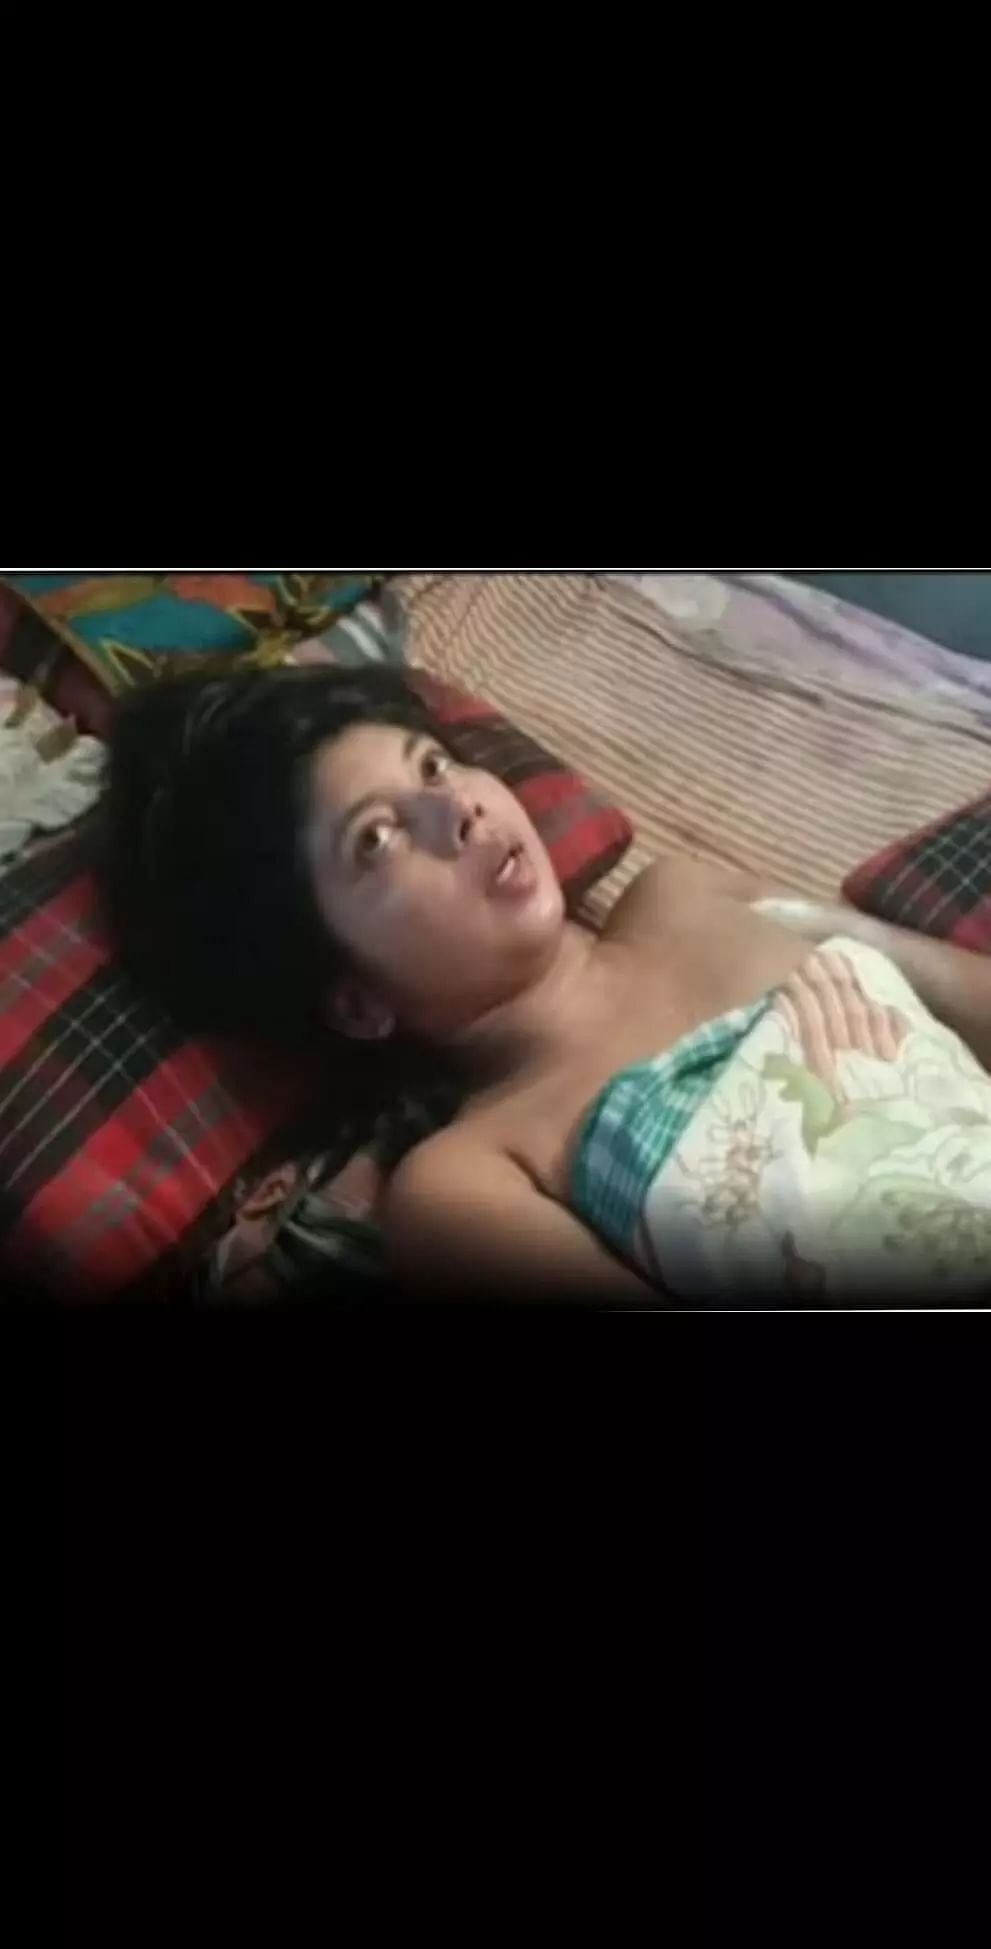 23 Year Old Girl Suffering from Brain Tumour Needs Your Financial Support to Undergo Treatment